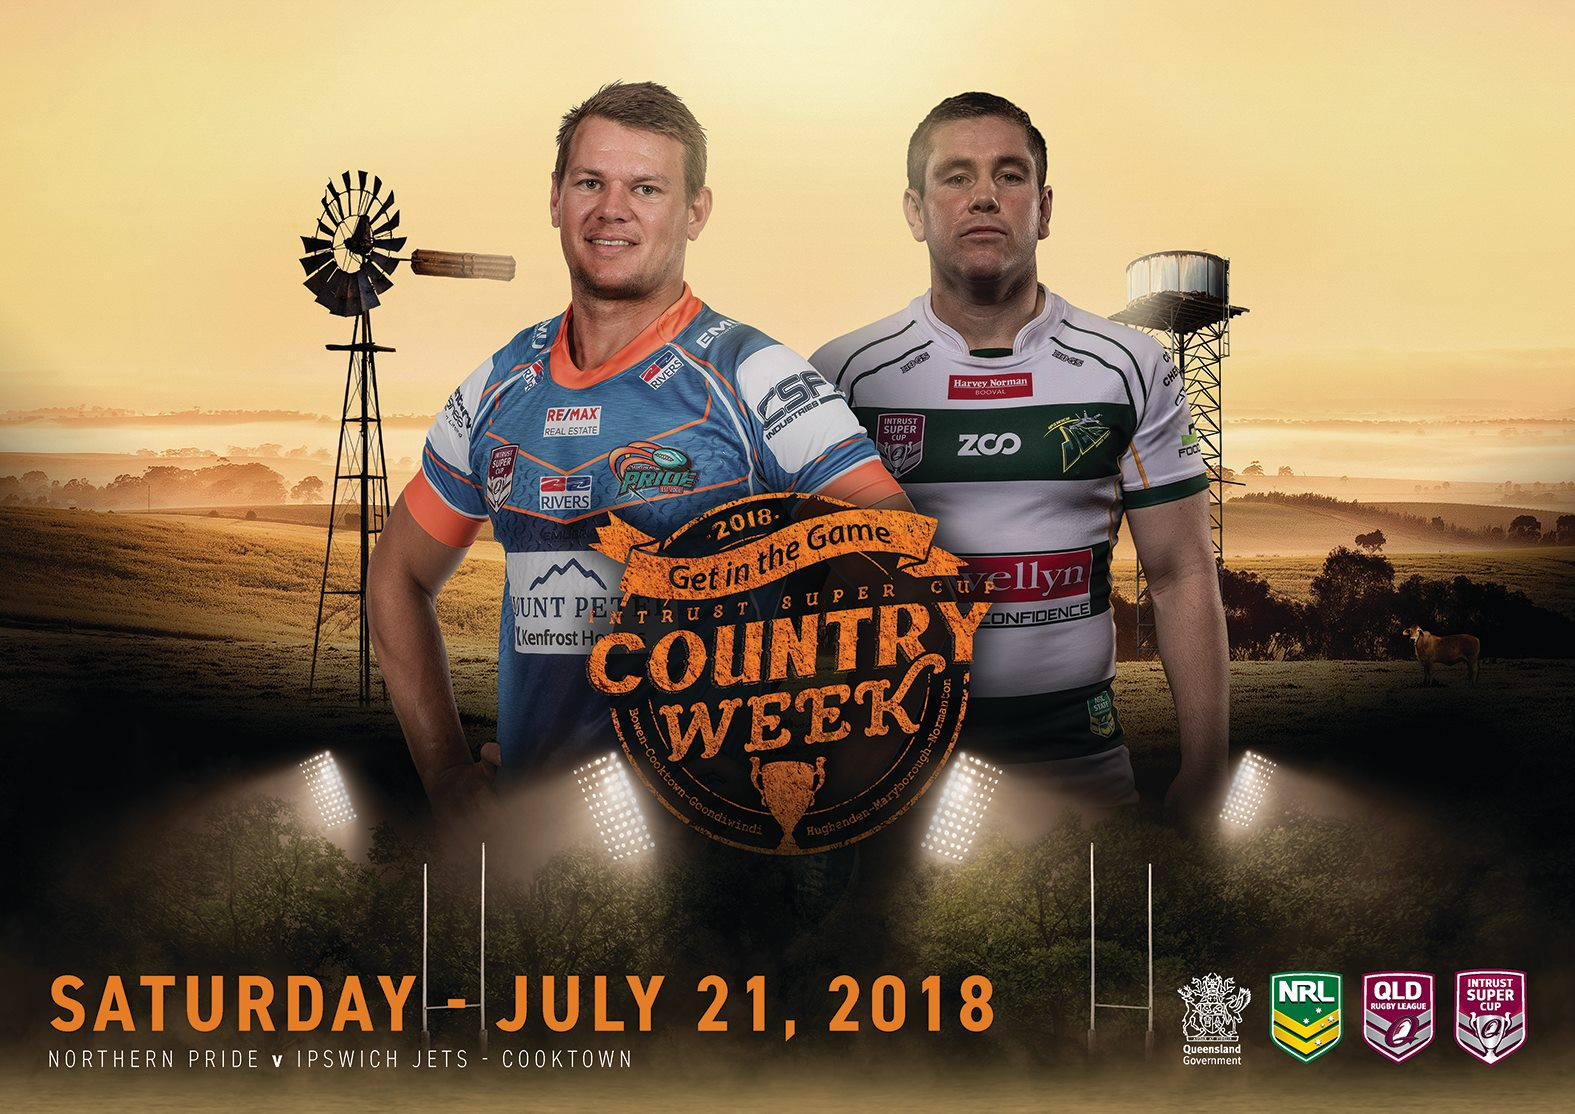 Country Week 2018